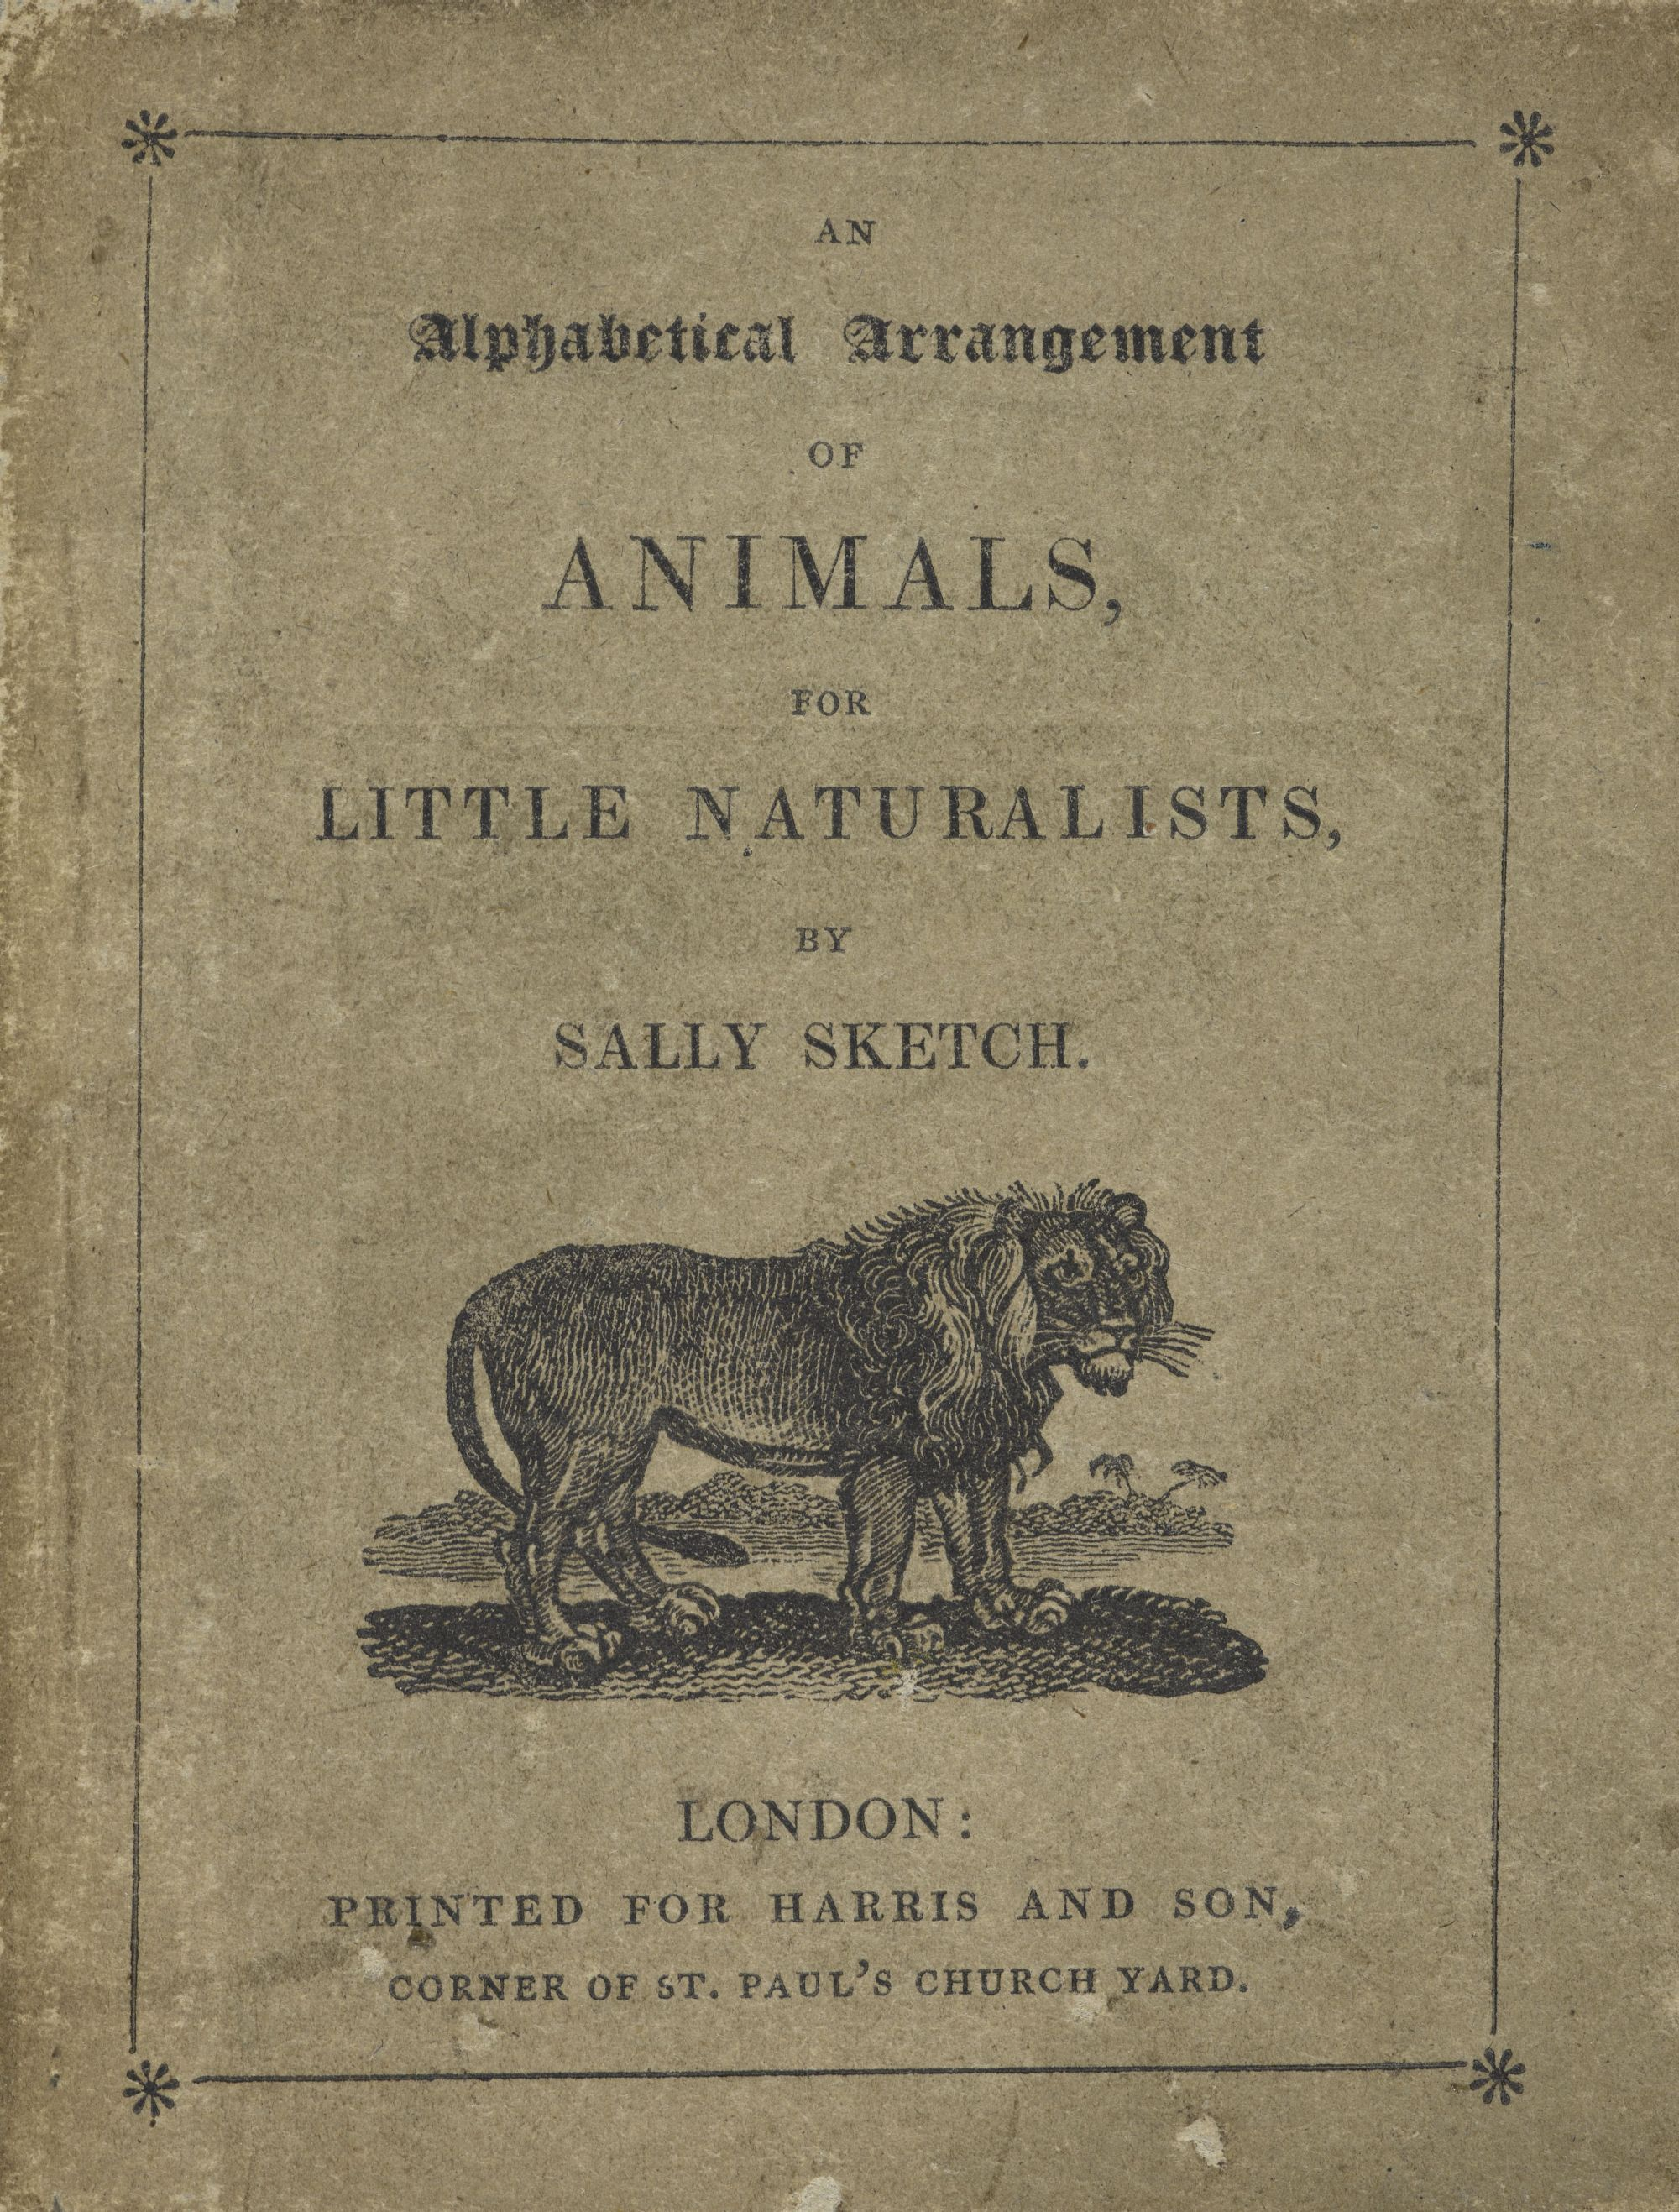 Cover page of Sally Sketch's Alphabet book for little naturalists